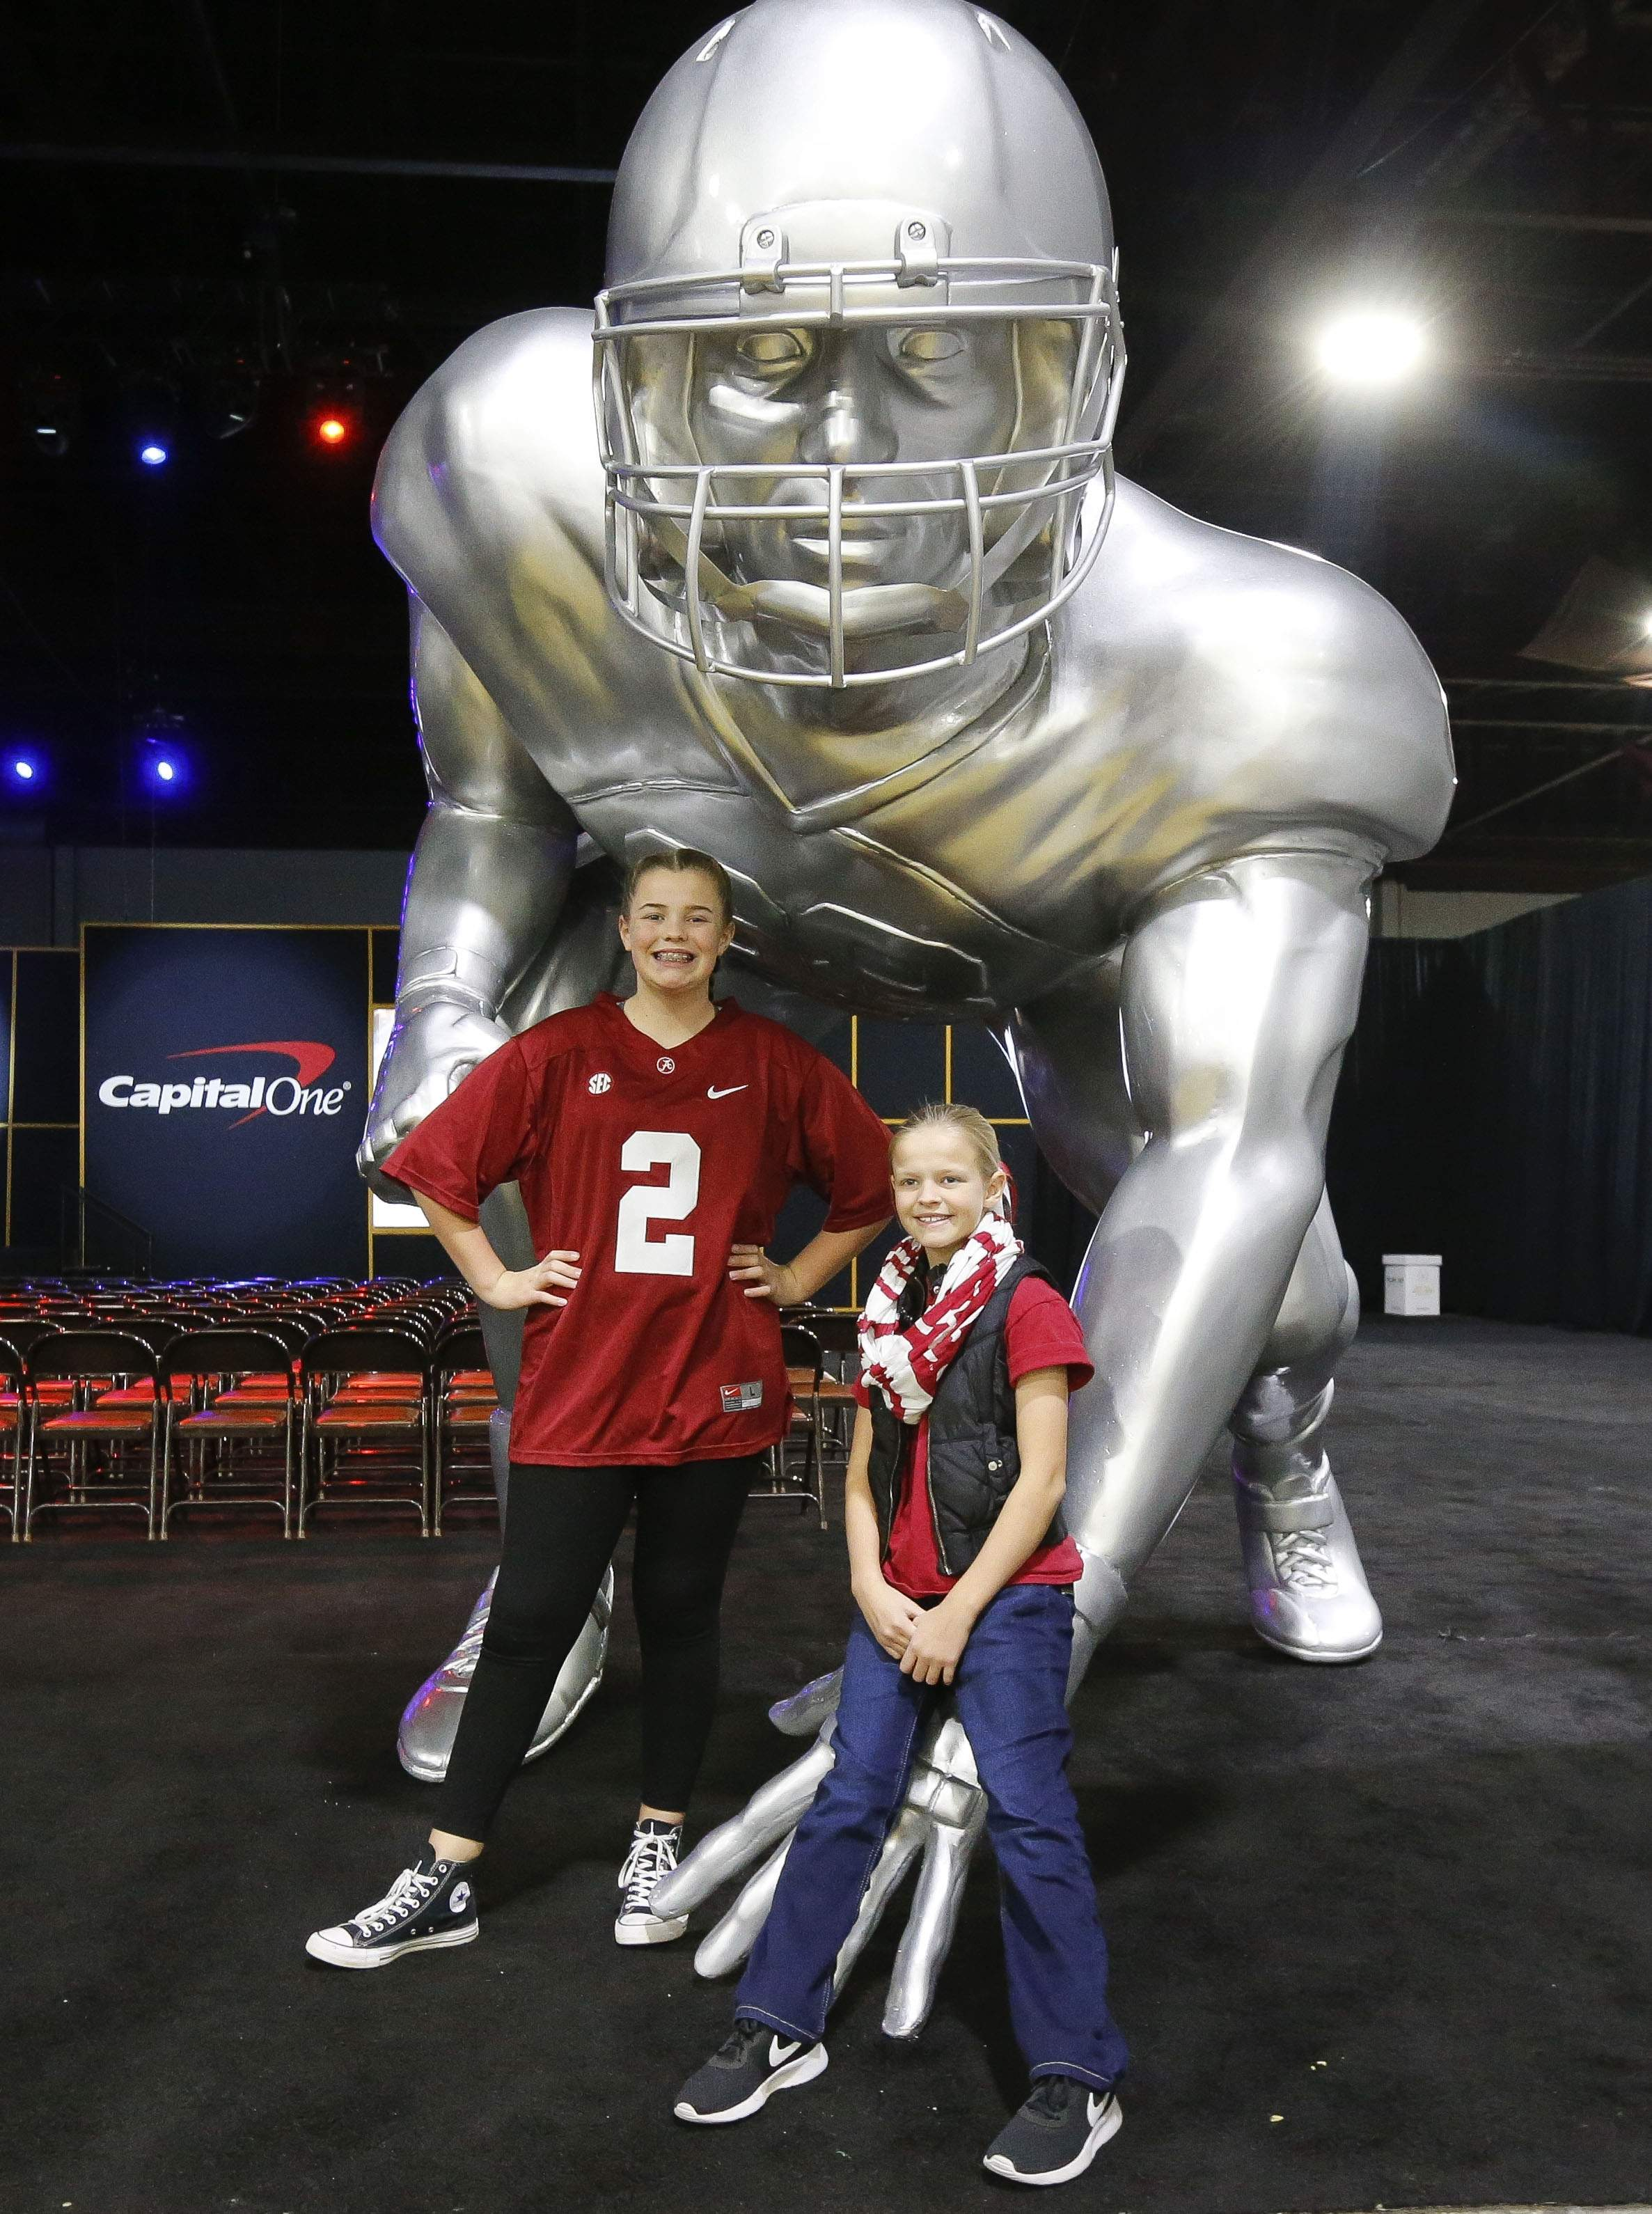 Alabama fans Mattie and Lily Brookshire pose for a photo with a giant football statue as Alabama and Georgia fans enjoy activities at the Georgia World Congress Center Sunday, Jan. 7, 2018. [Gary Cosby Jr./The Tuscaloosa News]